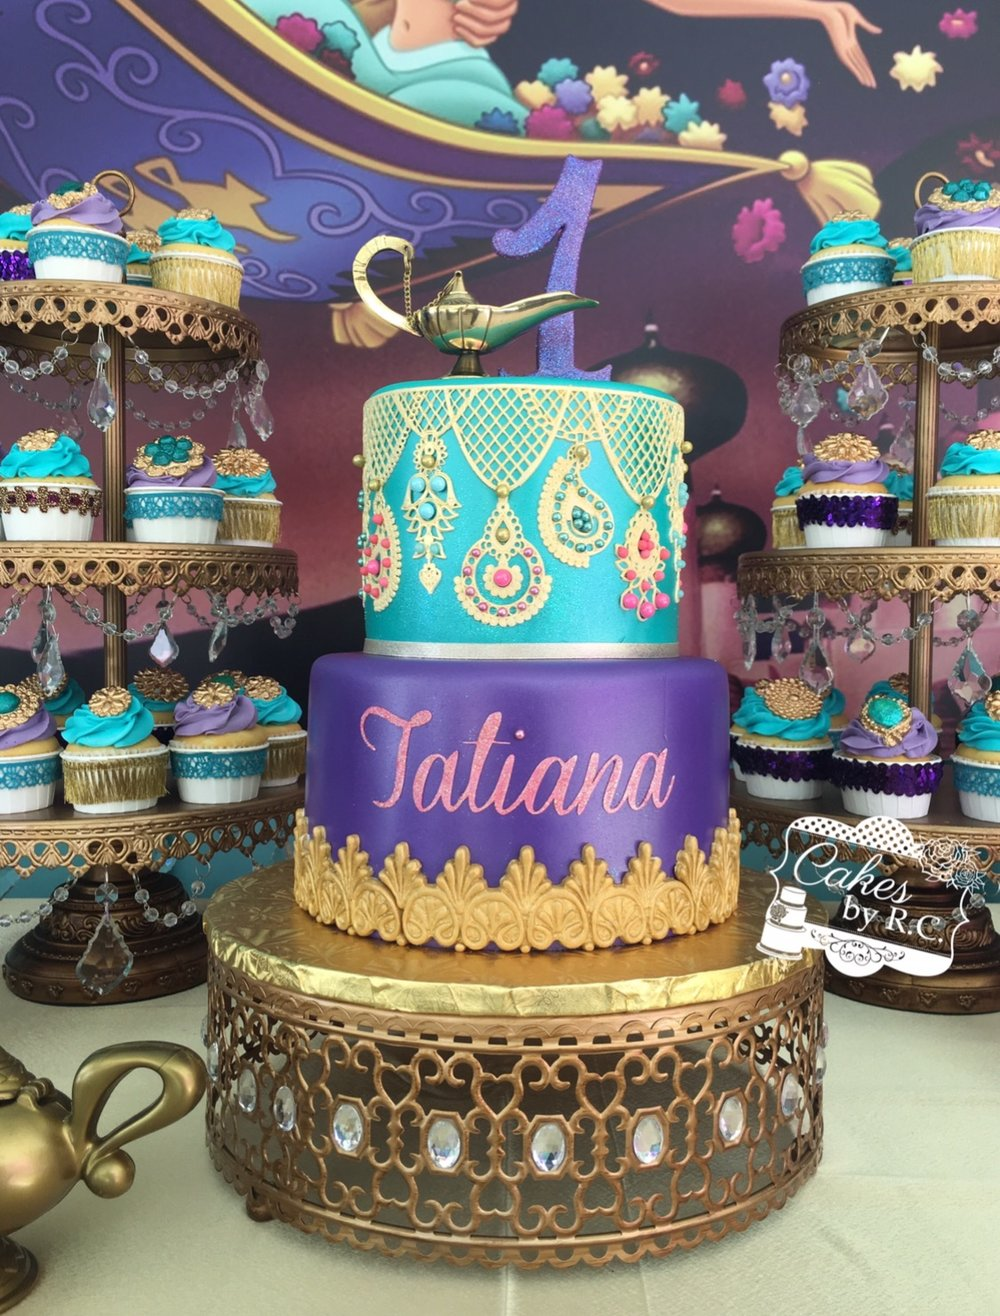 Gold Moroccan Jeweled Cake Stand & Tiered Dessert Stands by Opulent Treasures